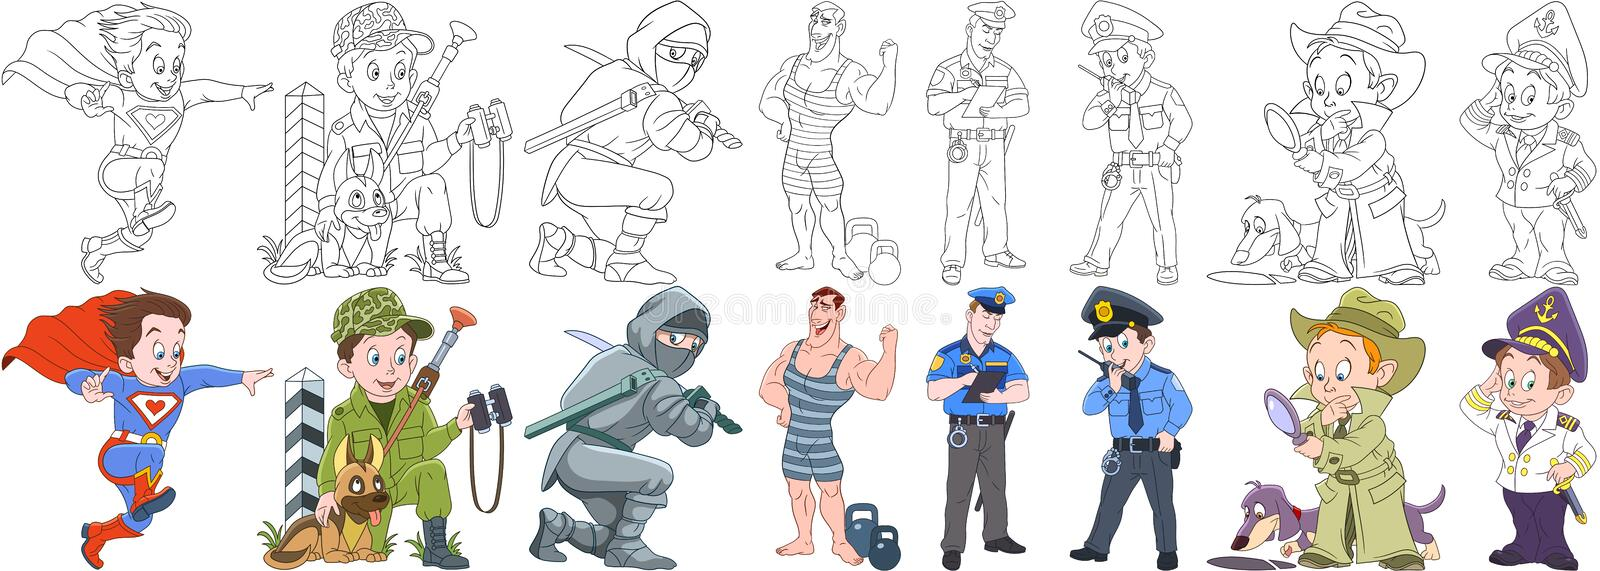 Cartoon military professions set royalty free stock image